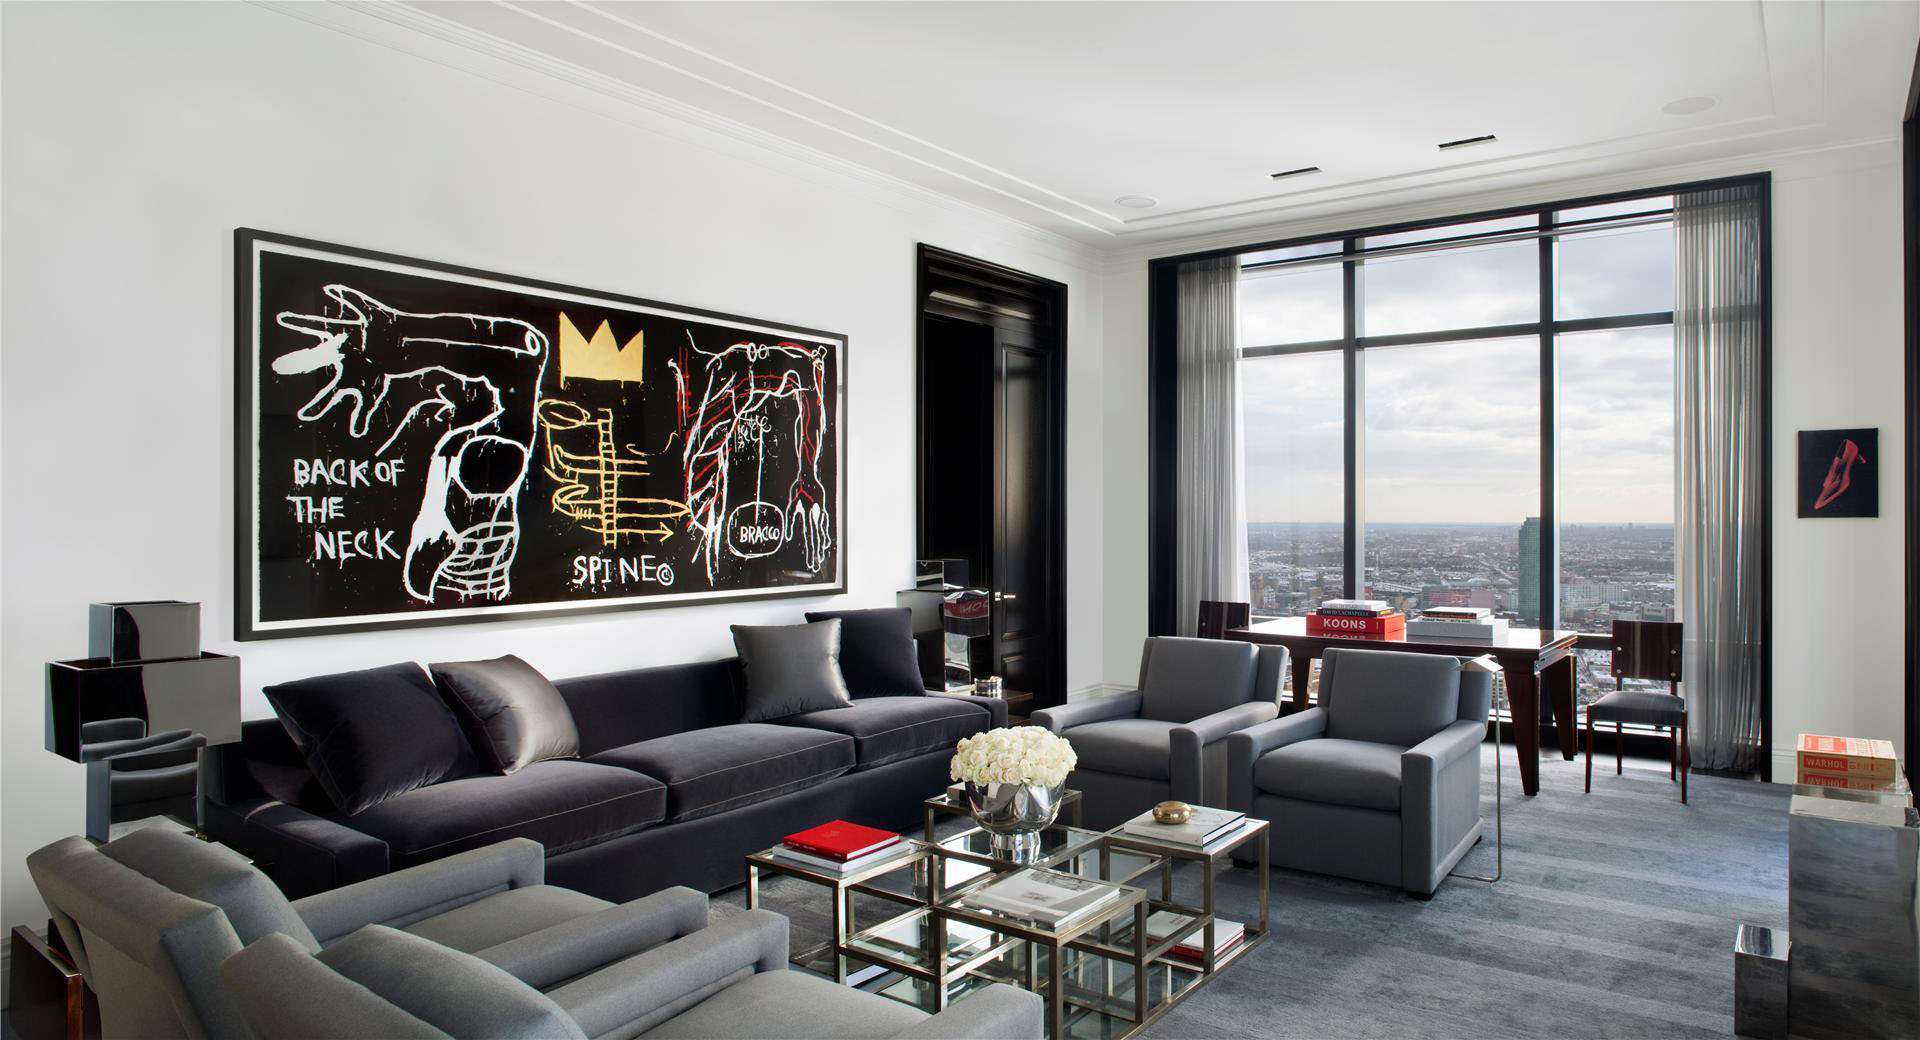 Trump world tower modern penthouse idesignarch for Interior design ideas for mens living room